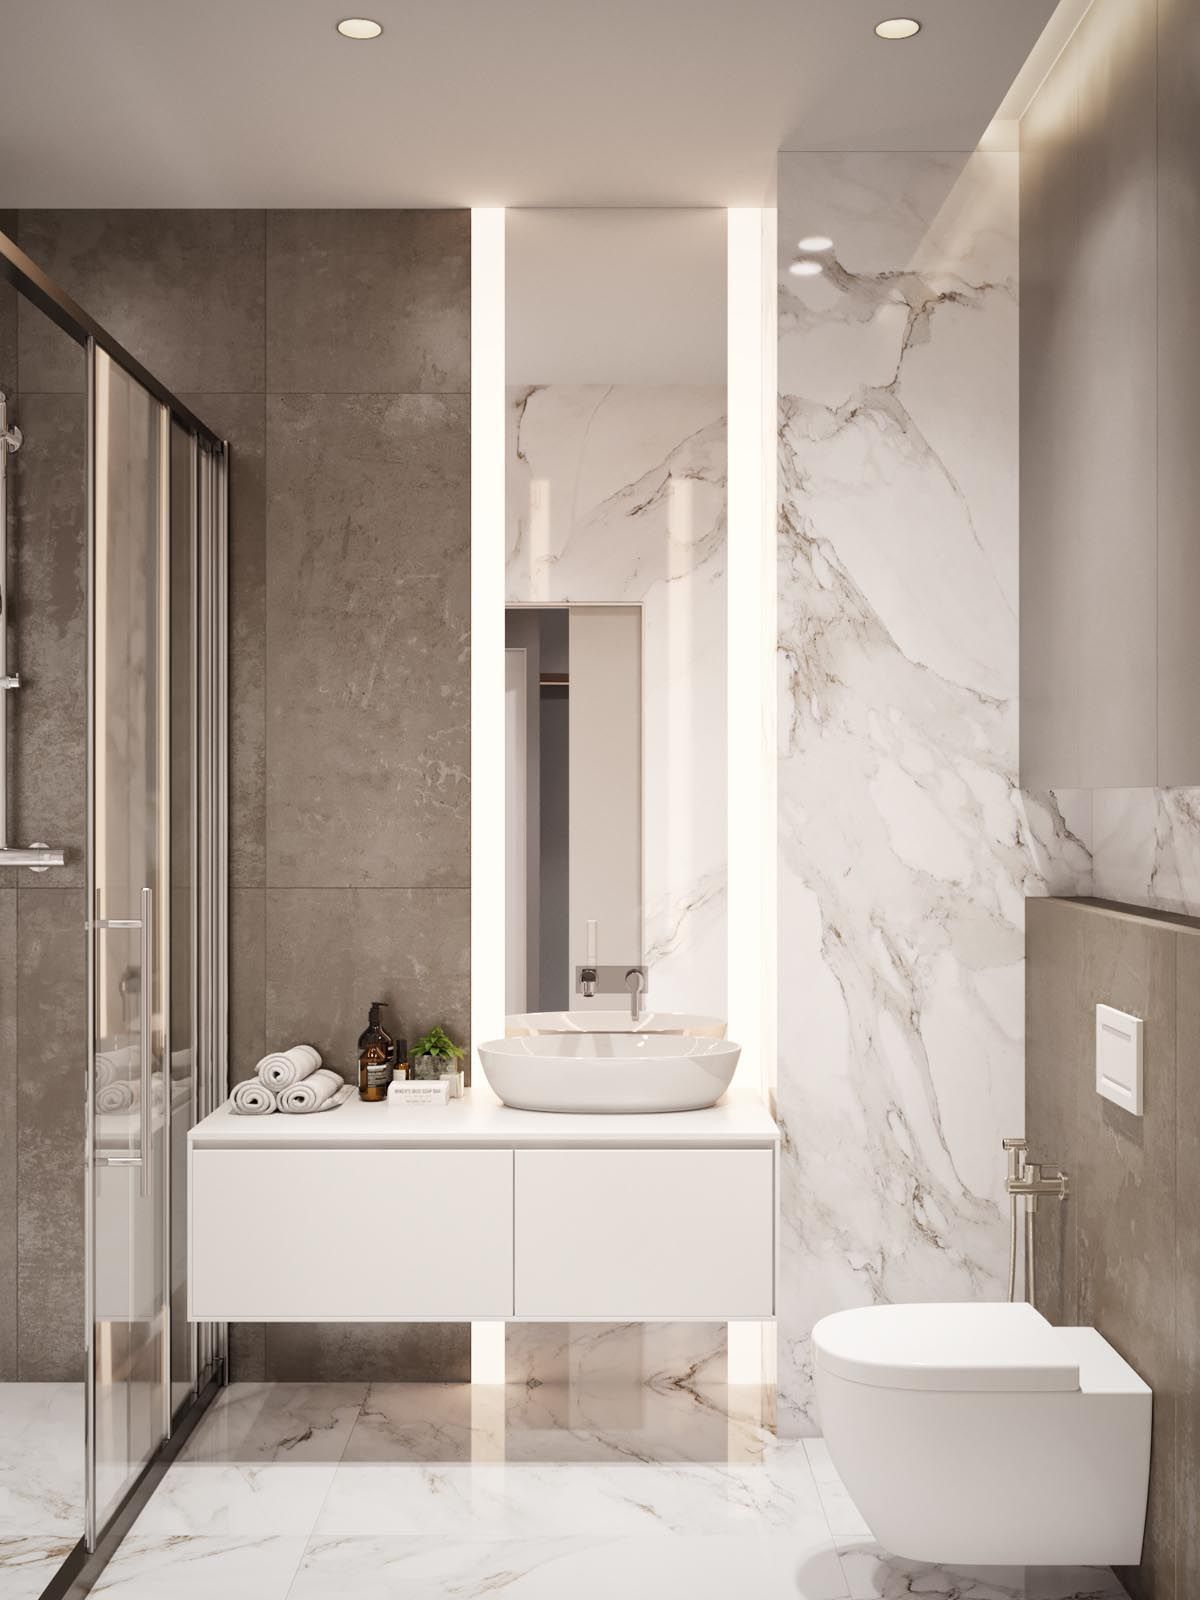 Inspirational Bathroom Decor Modern Luxury Home Design Under 60 Square Meters 3 Examples That In 2020 Modern Style Bathroom Bathroom Design Small Bathroom Styling